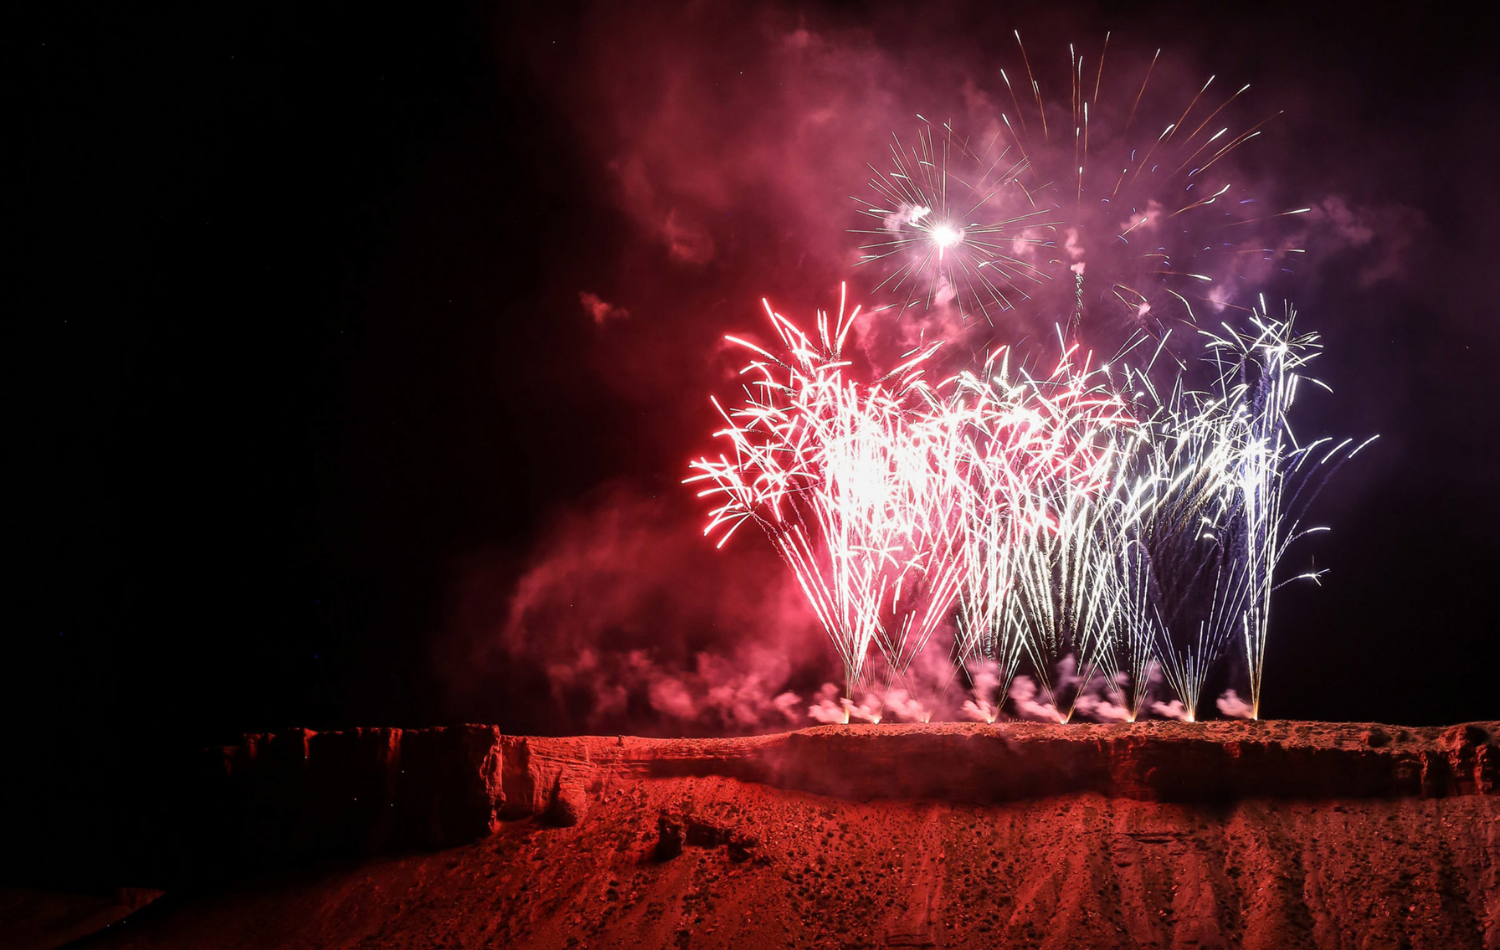 July 4th Fire Up the Cliffs Fireworks Celebration in Kremmling, CO - Grand County